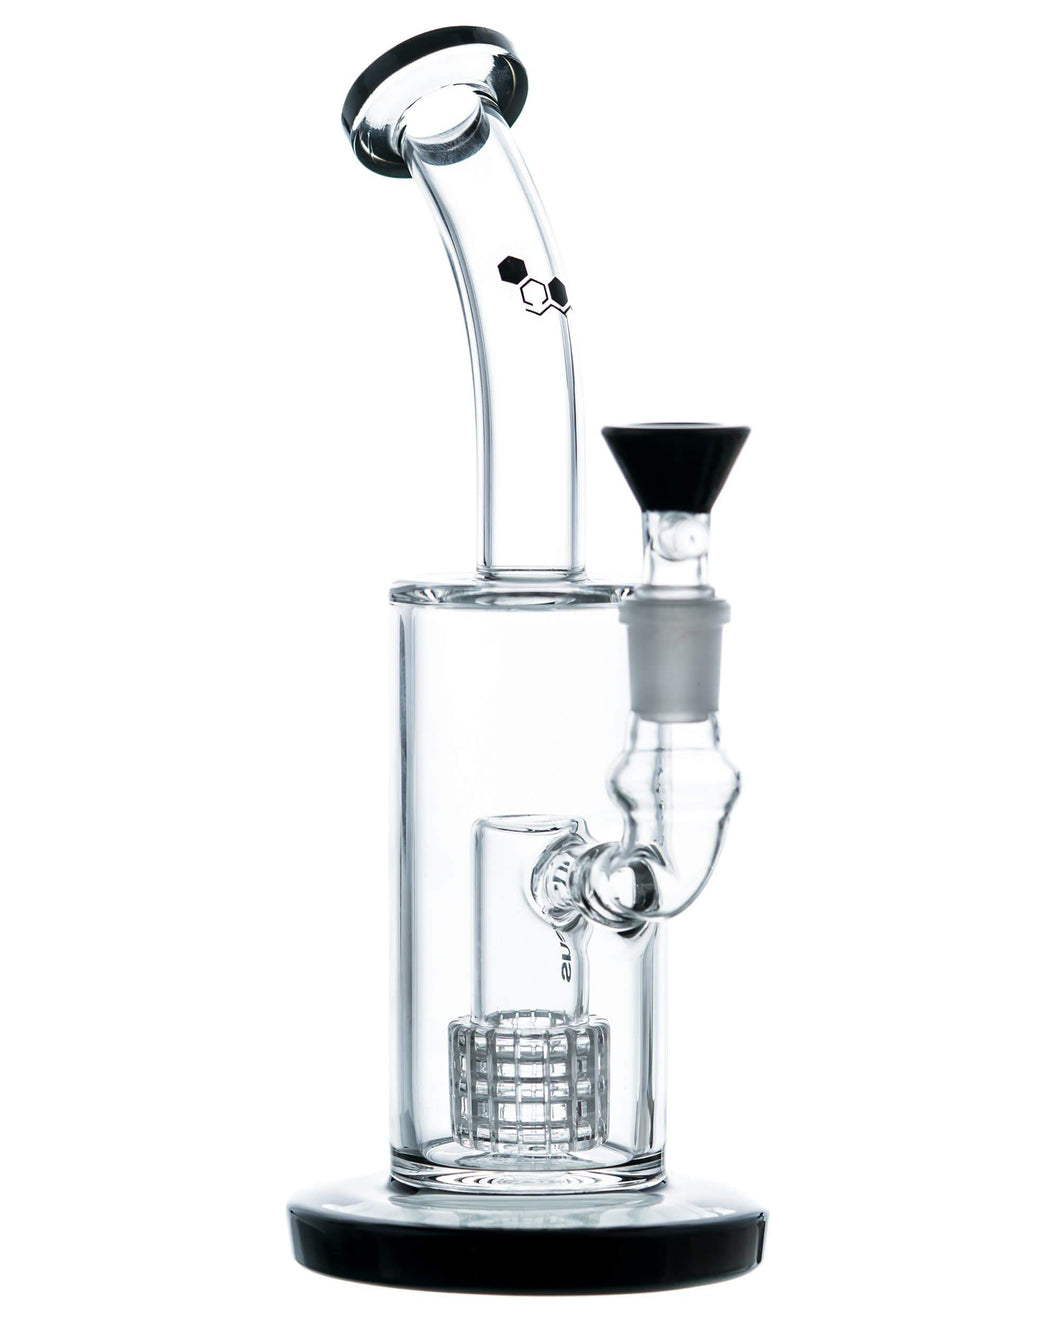 Bent Neck Matrix Perc Bong w/ Black Accents